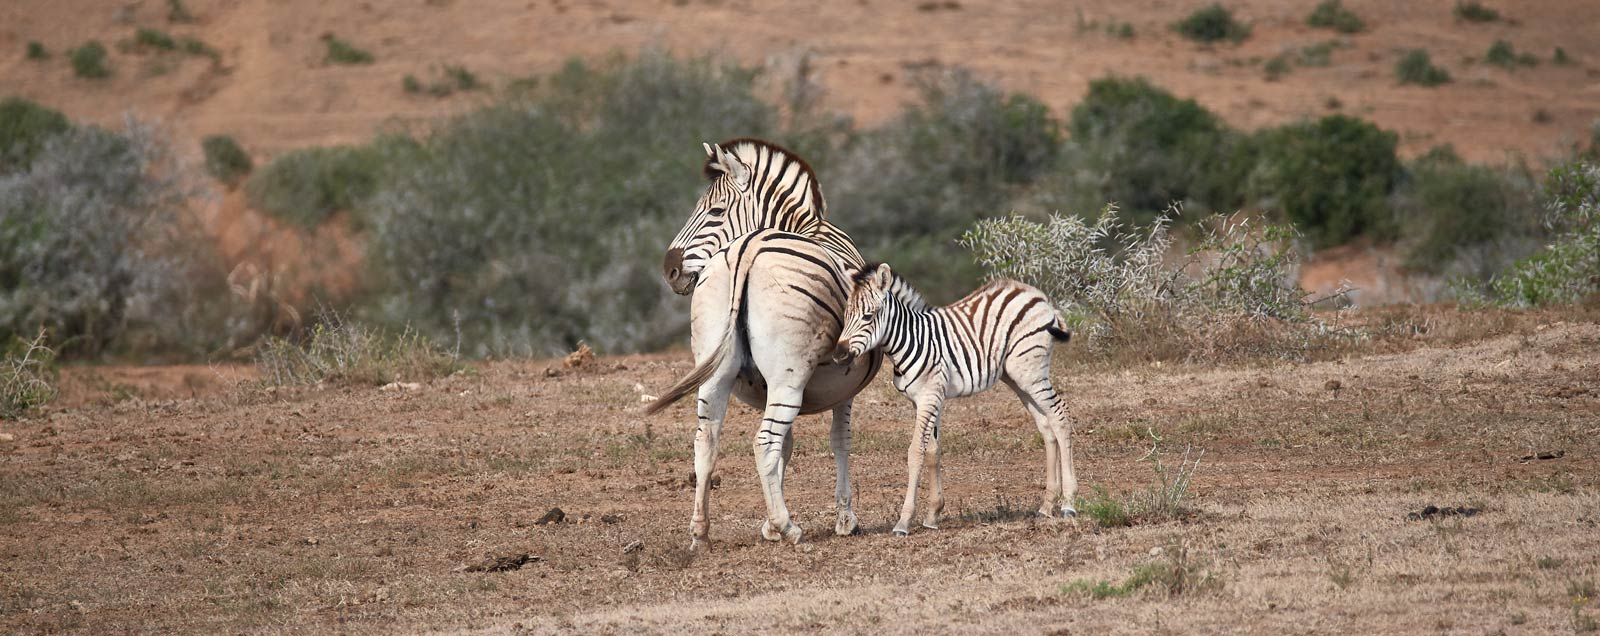 mother and young zebra